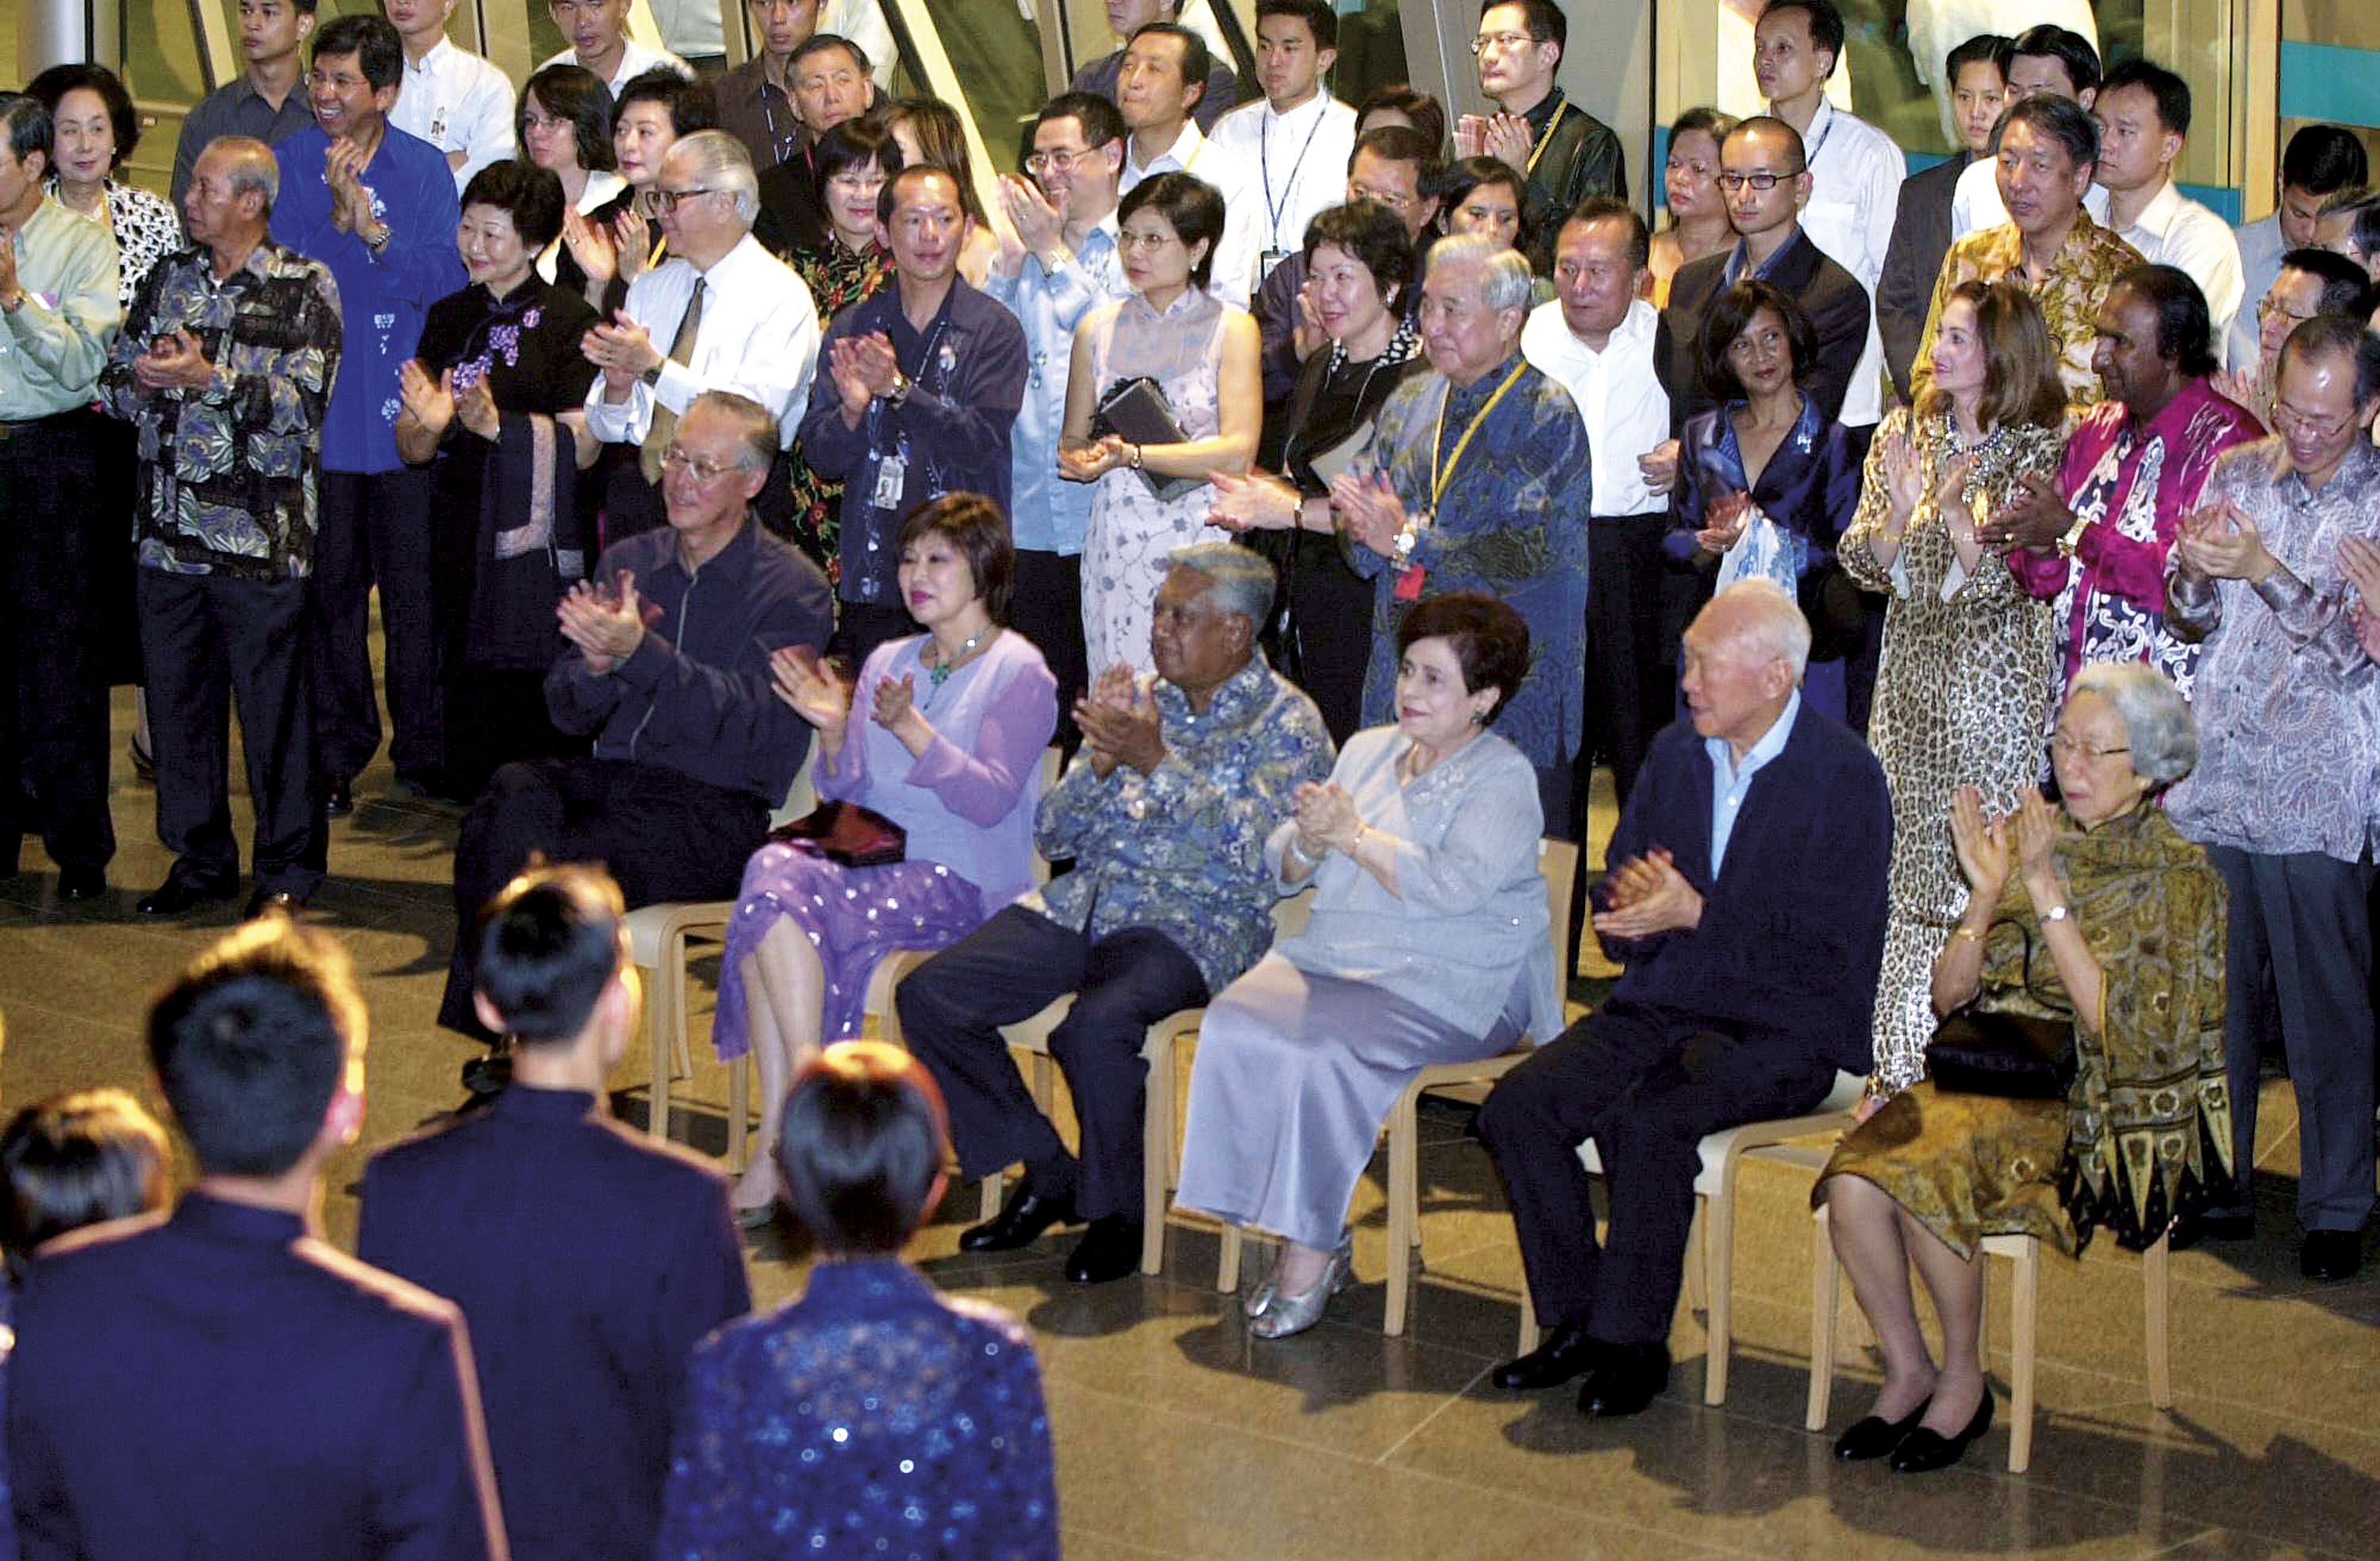 VIPs at Esplanade's opening event (seated, left to right - then Singapore Prime Minister Goh Chok Tong and Mrs Goh, then President SR Nathan and Mrs Nathan, and then Senior Minister Lee Kuan Yew and Mrs Lee Photo courtesy: Esplanade - Theatres on the Bay